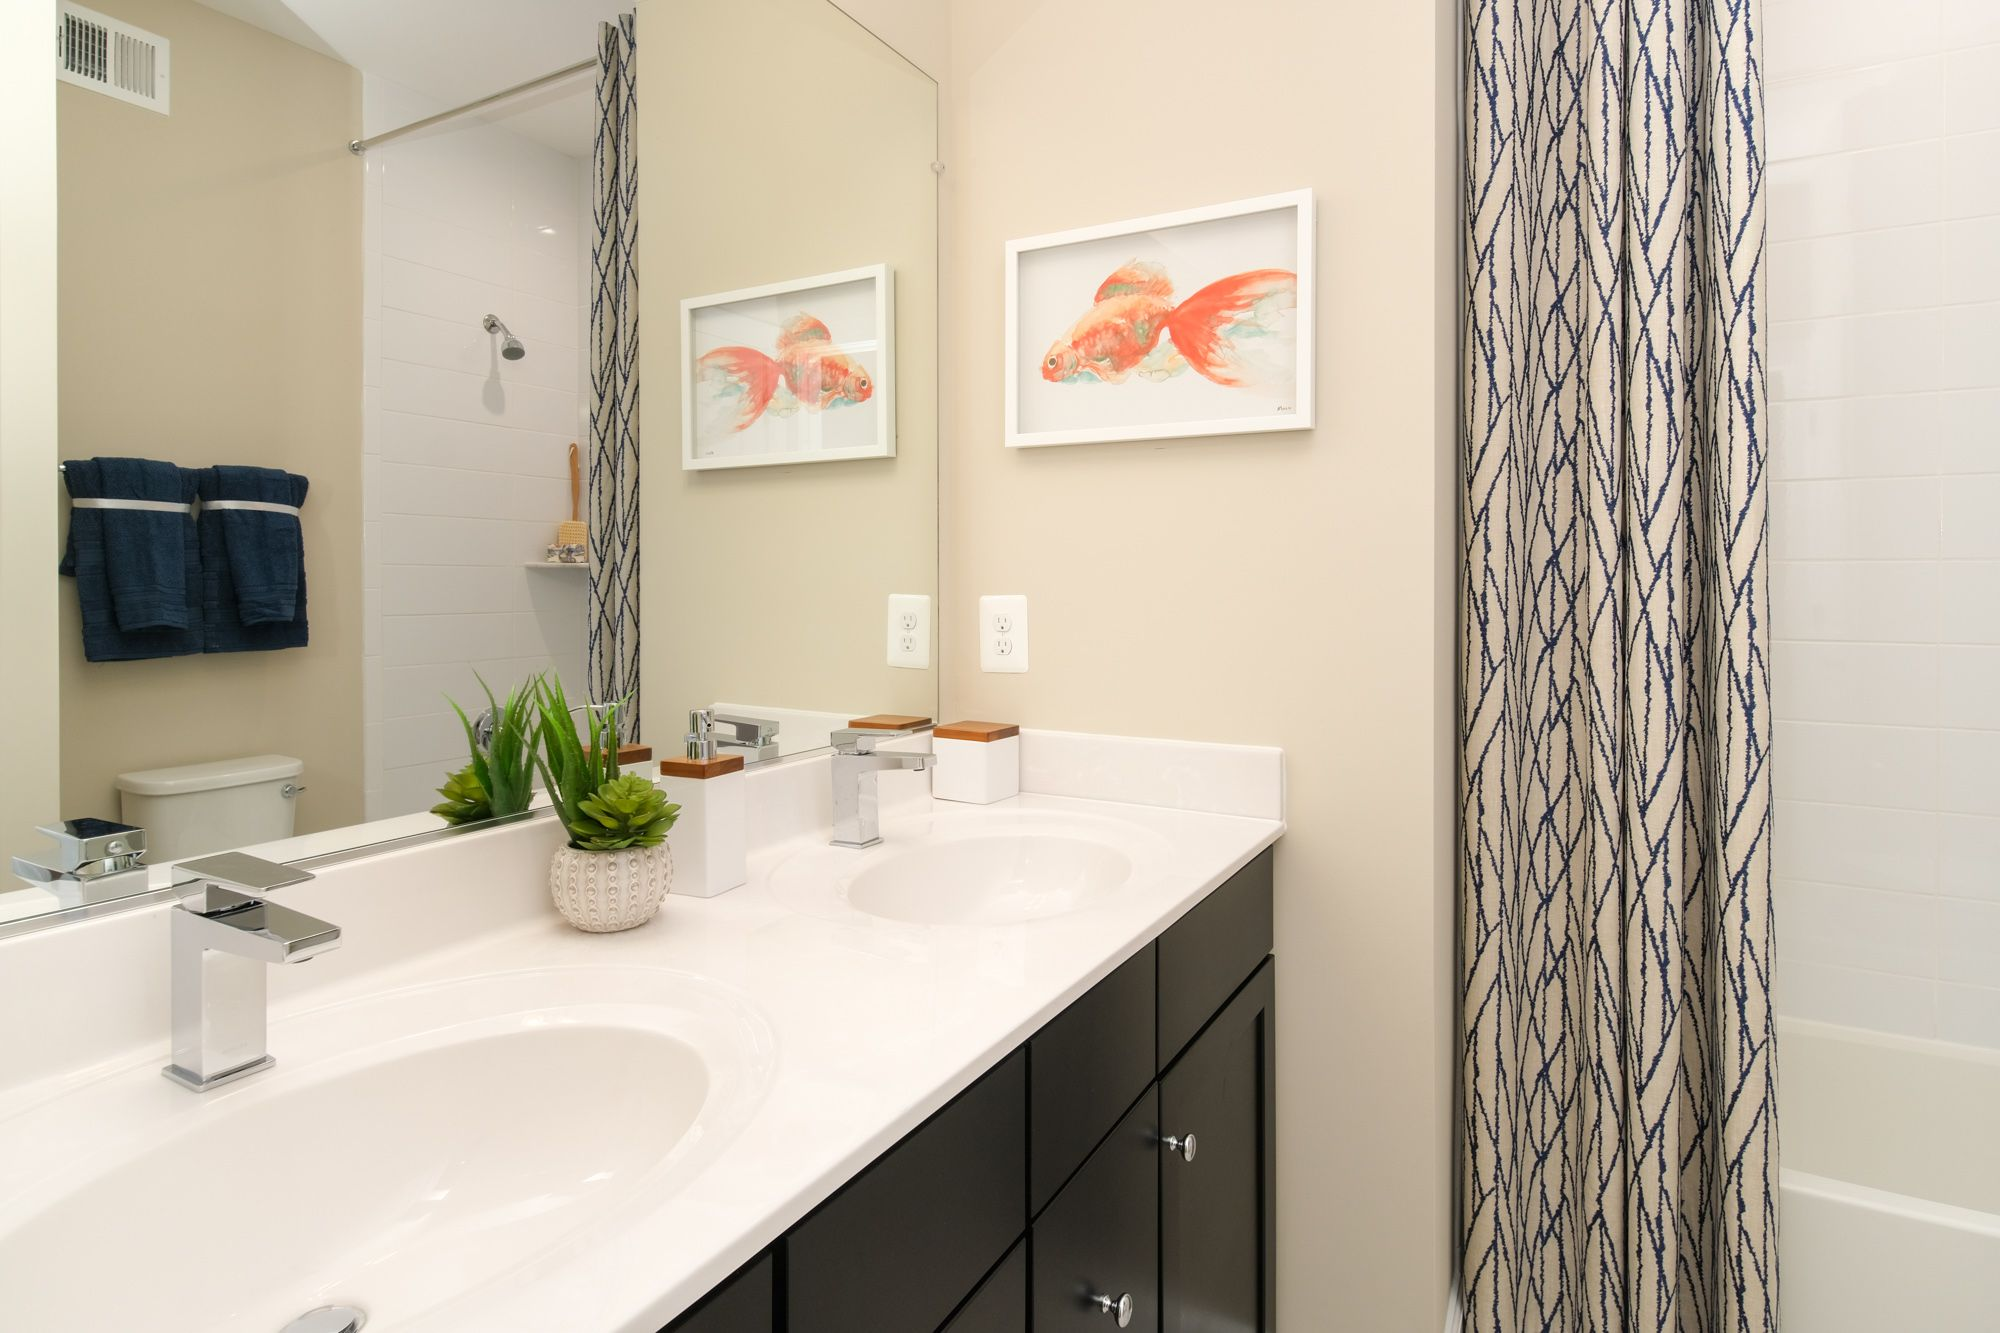 Bathroom featured in the Chatham By Stanley Martin Homes in Washington, MD